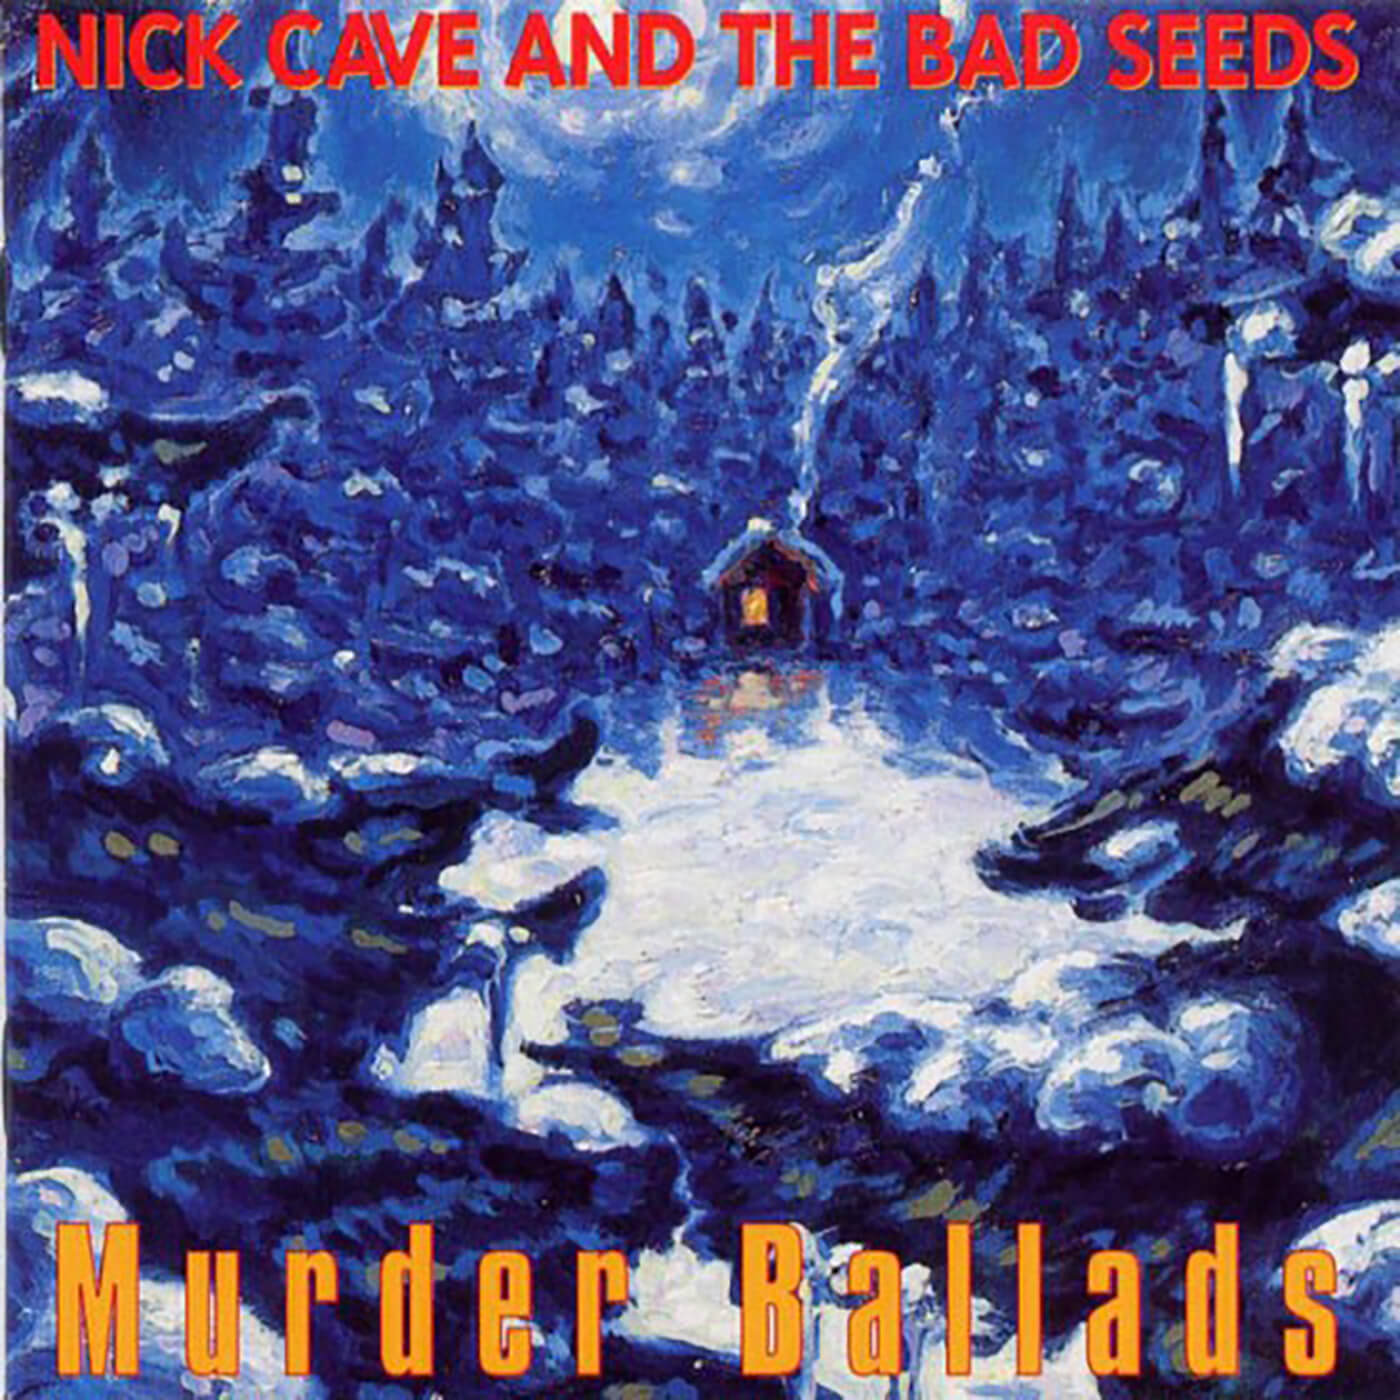 Nick Cave And The Bad Seeds - Murder Ballads